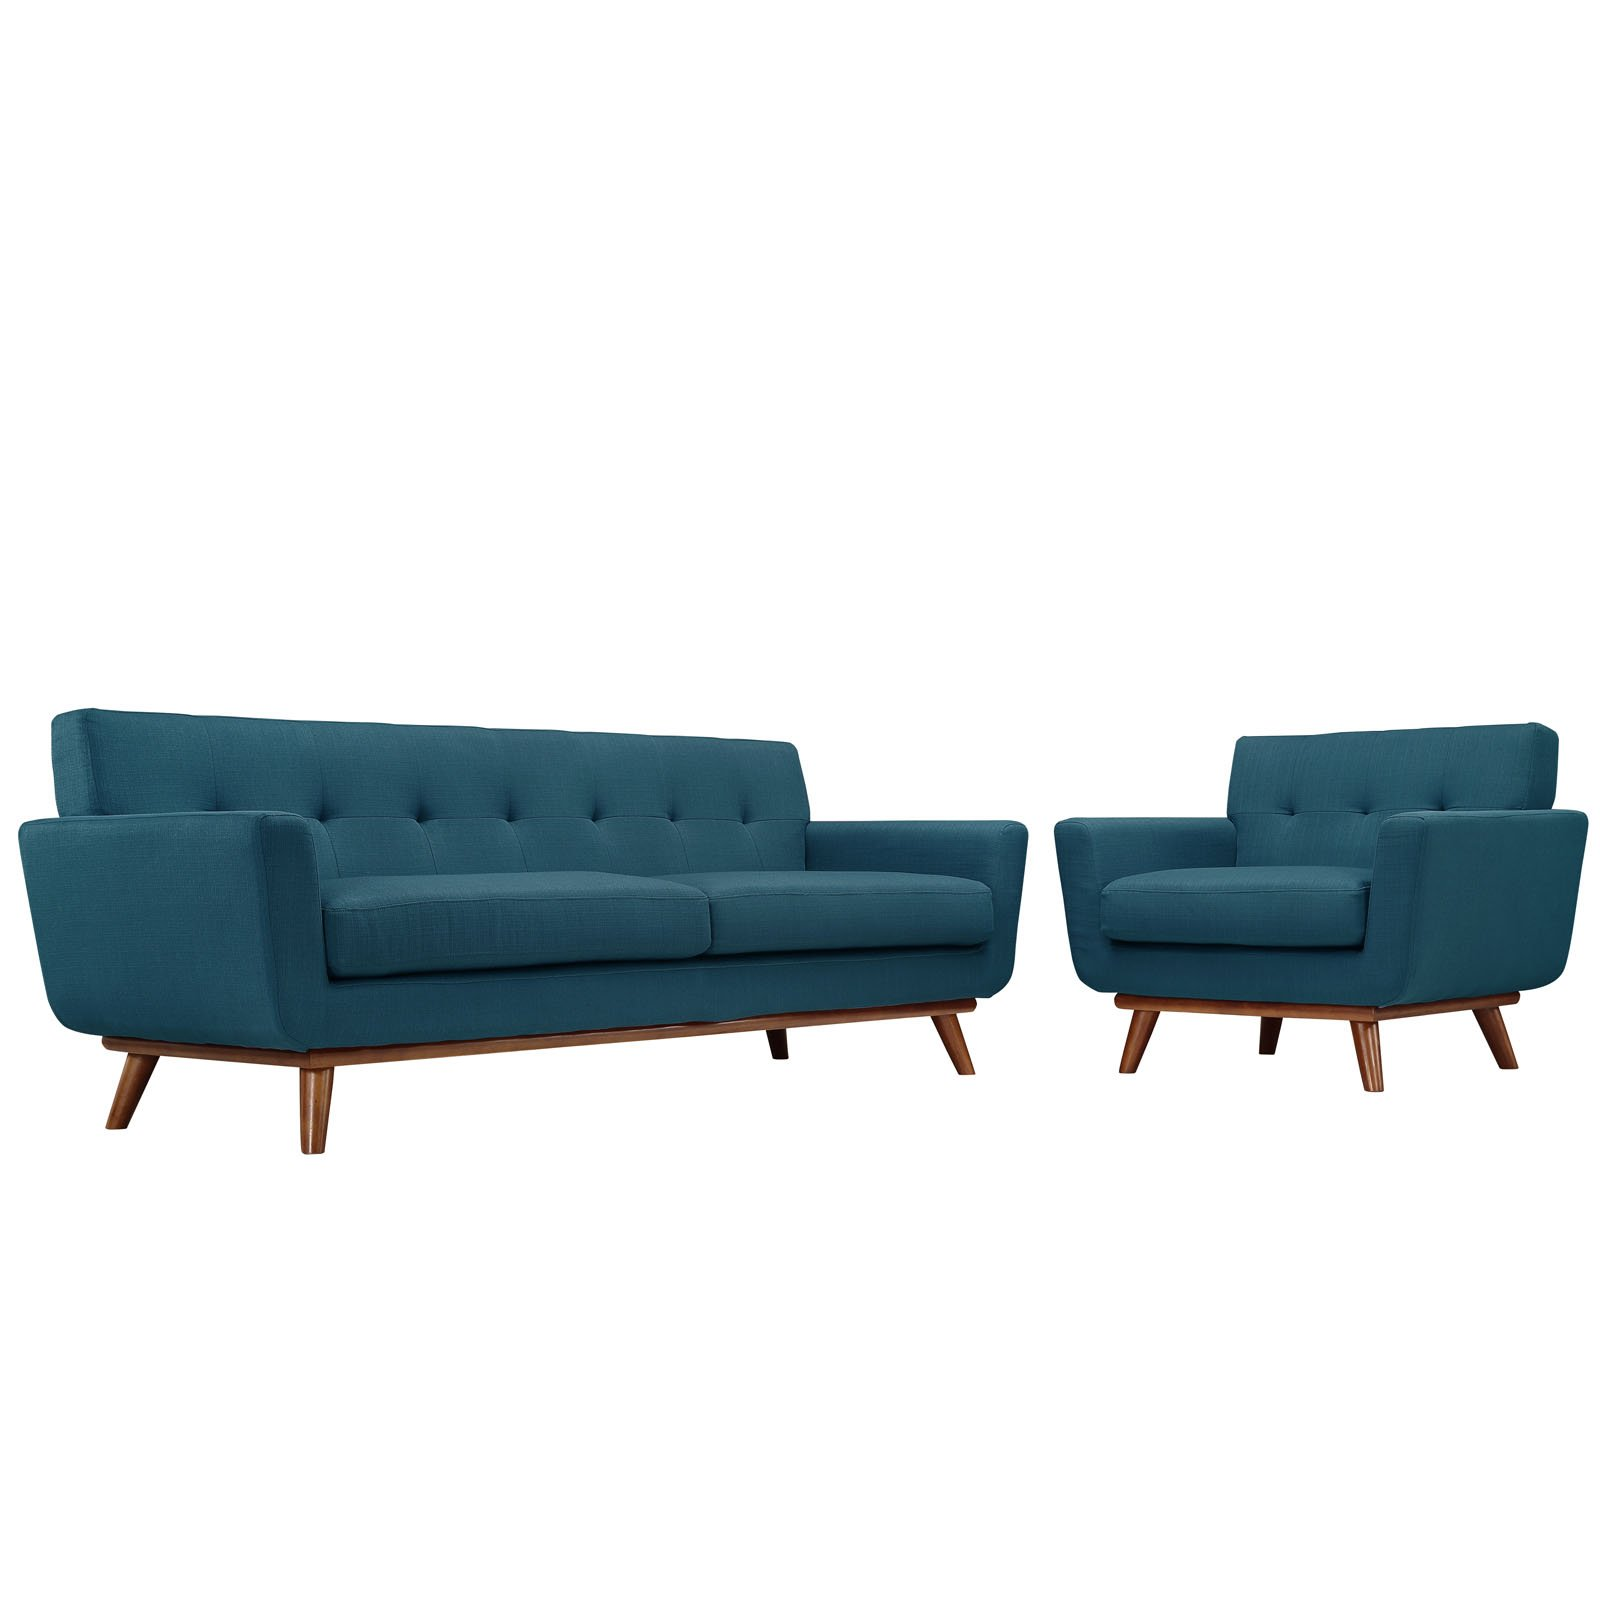 Modway Engage Mid-Century Modern Upholstered Sofa and Armchair Set in Azure by Modway